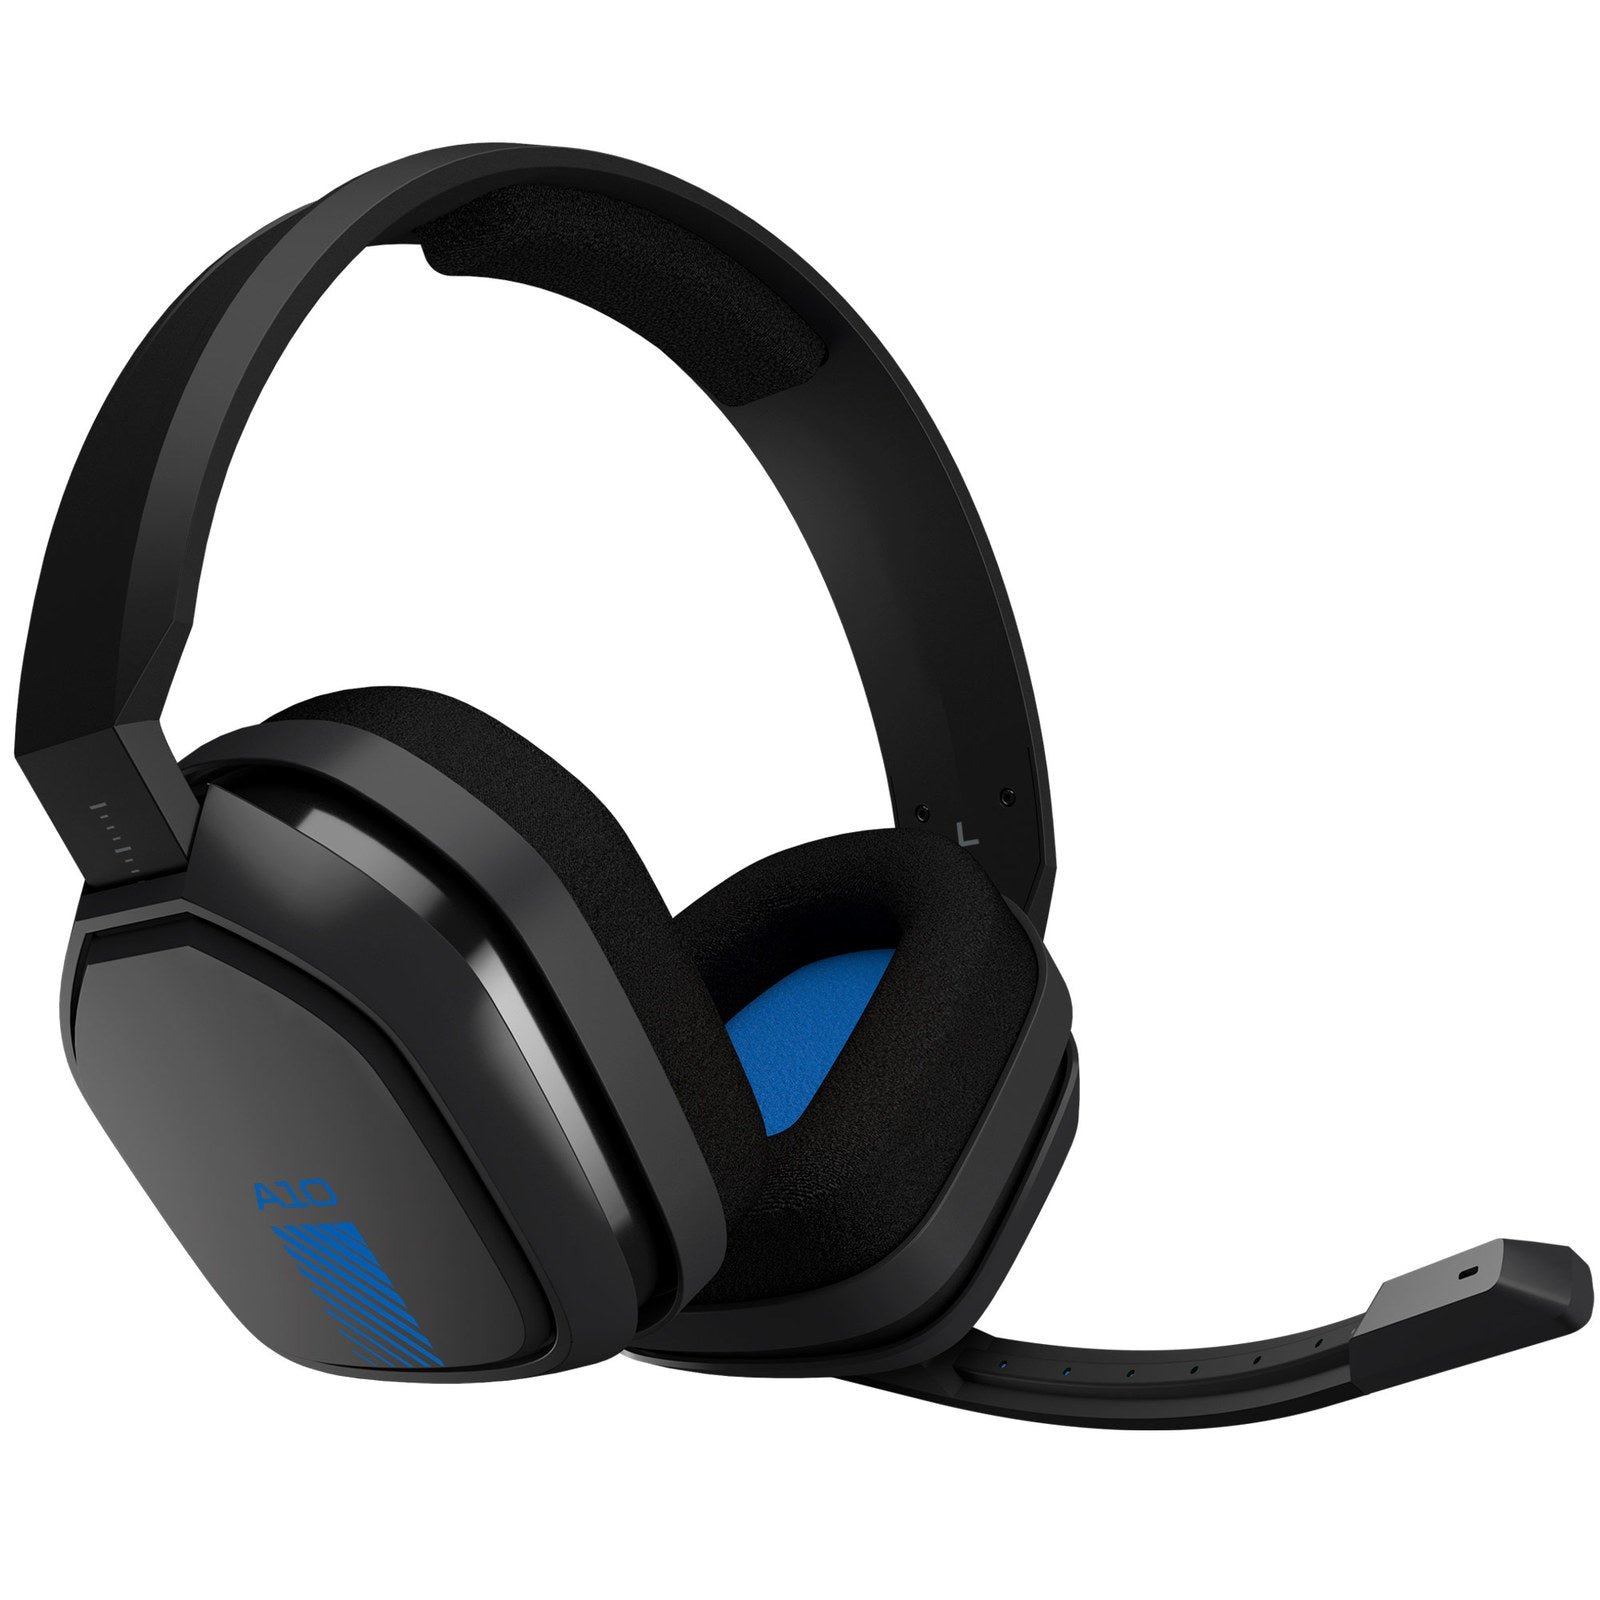 Astro A10 Wired Headset (Grey/Blue) - Xbox One